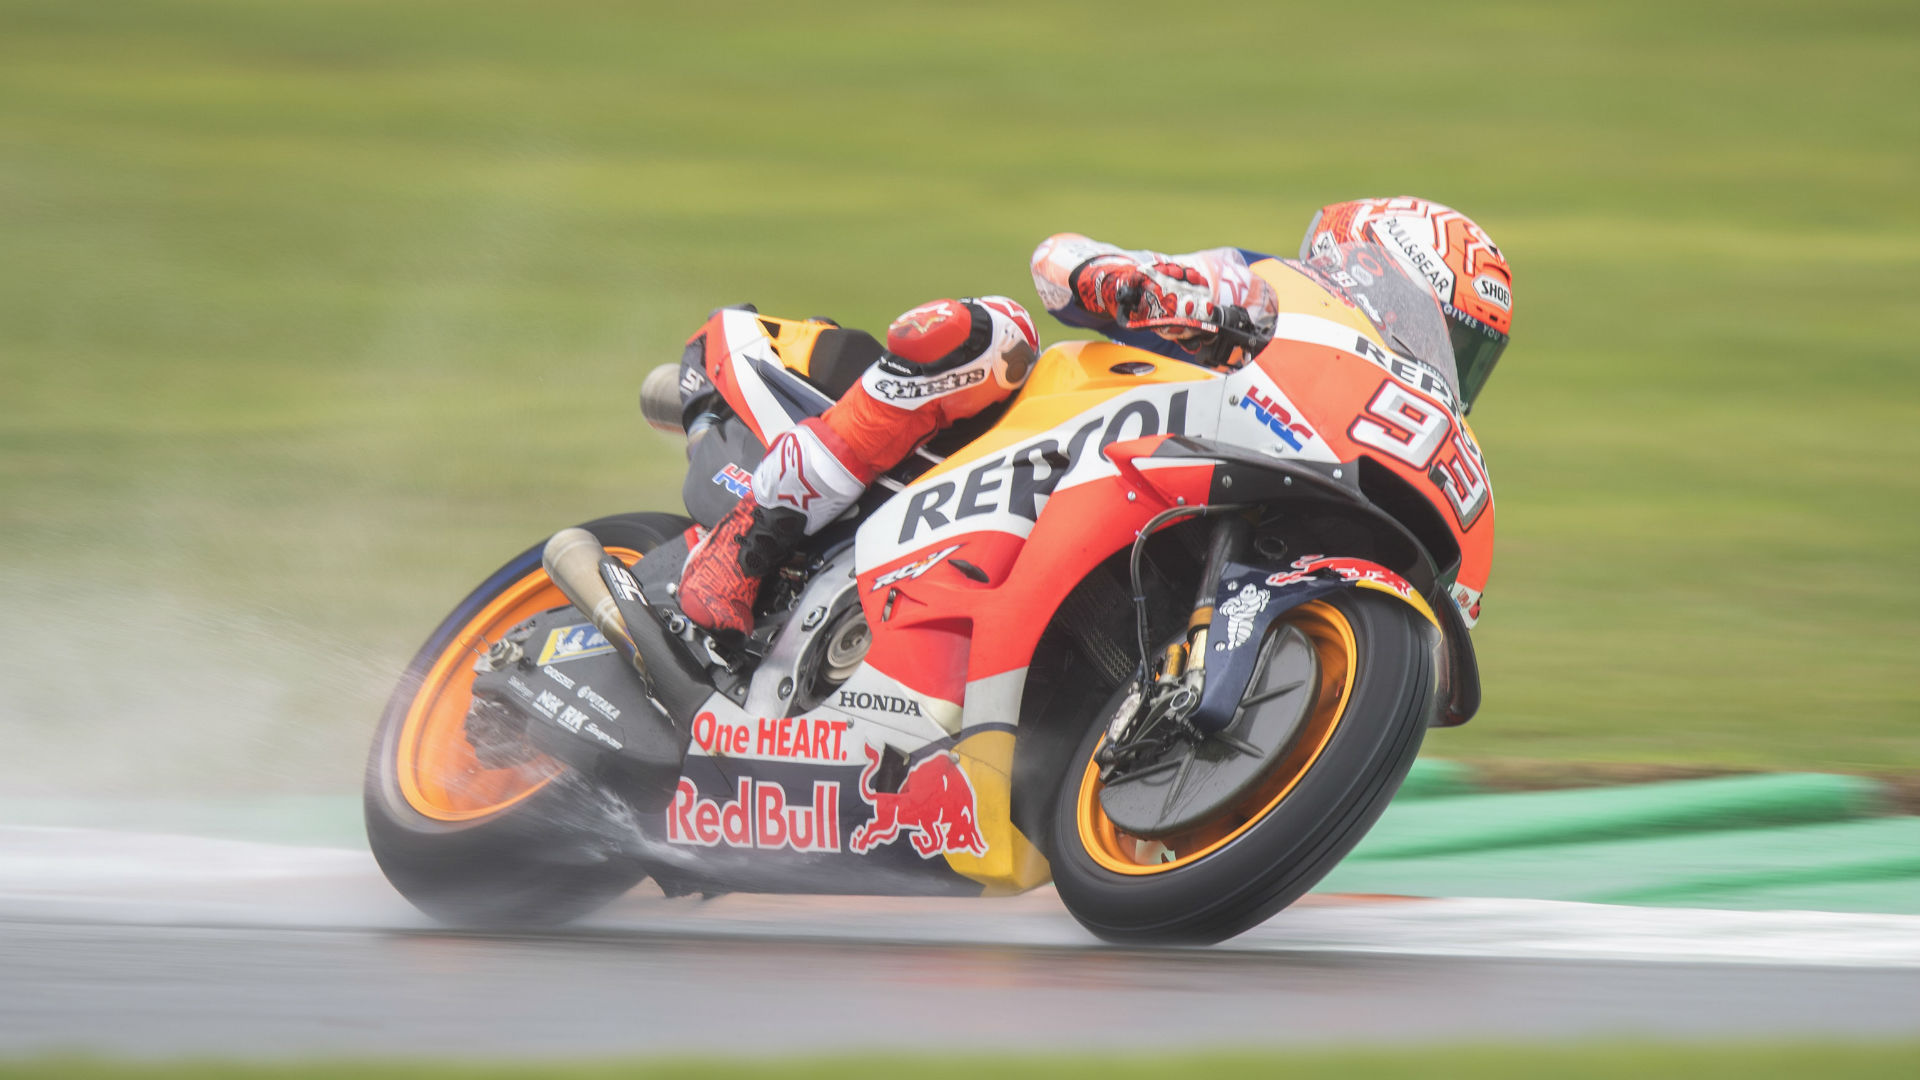 Repsol Honda pair Marc Marquez and Jorge Lorenzo will look to regain fitness for February testing after needing surgery to treat injuries.